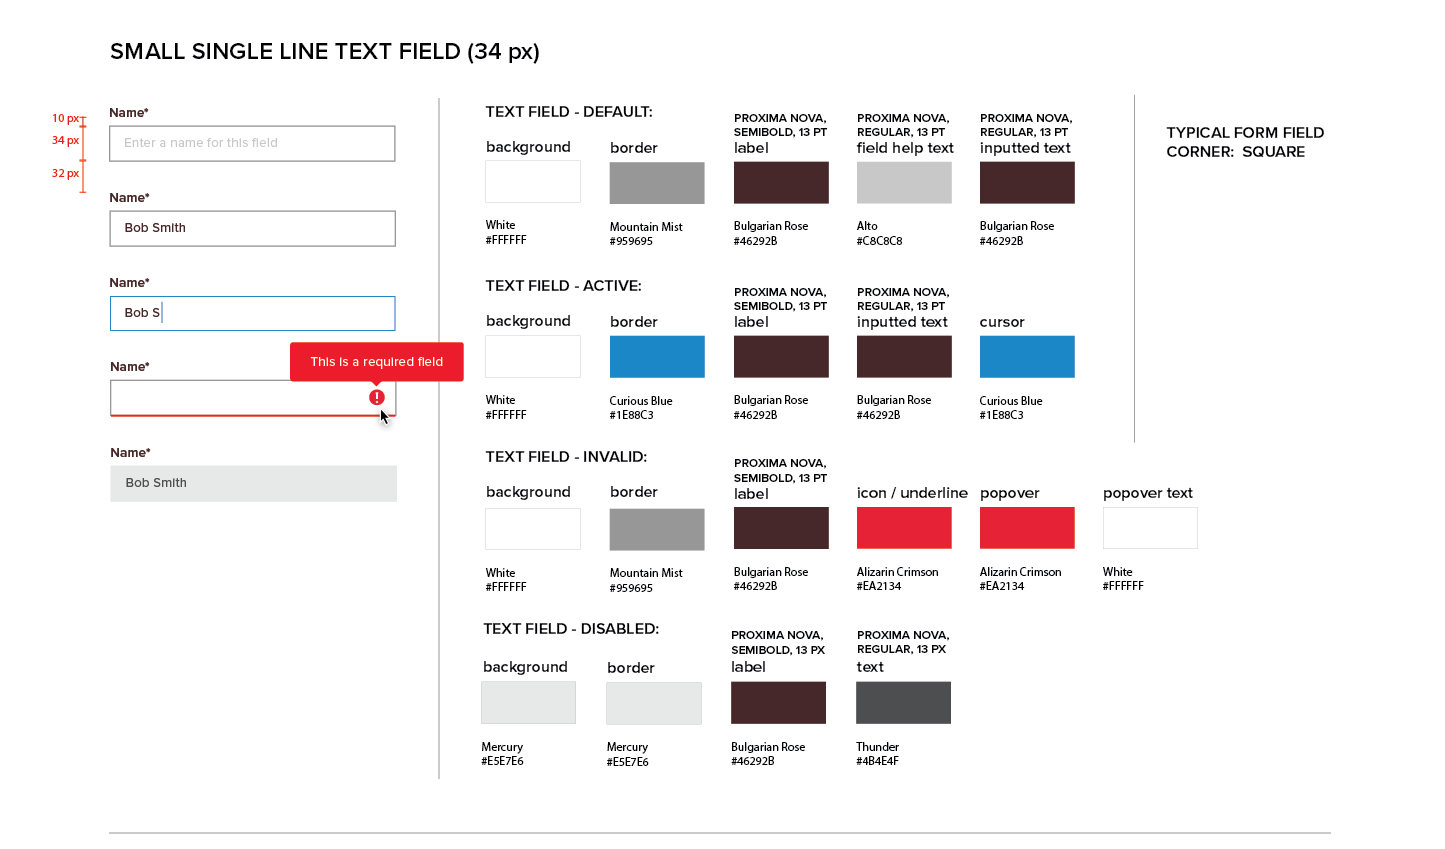 Persona Bar Style Guide - Small Single-Line Text Field